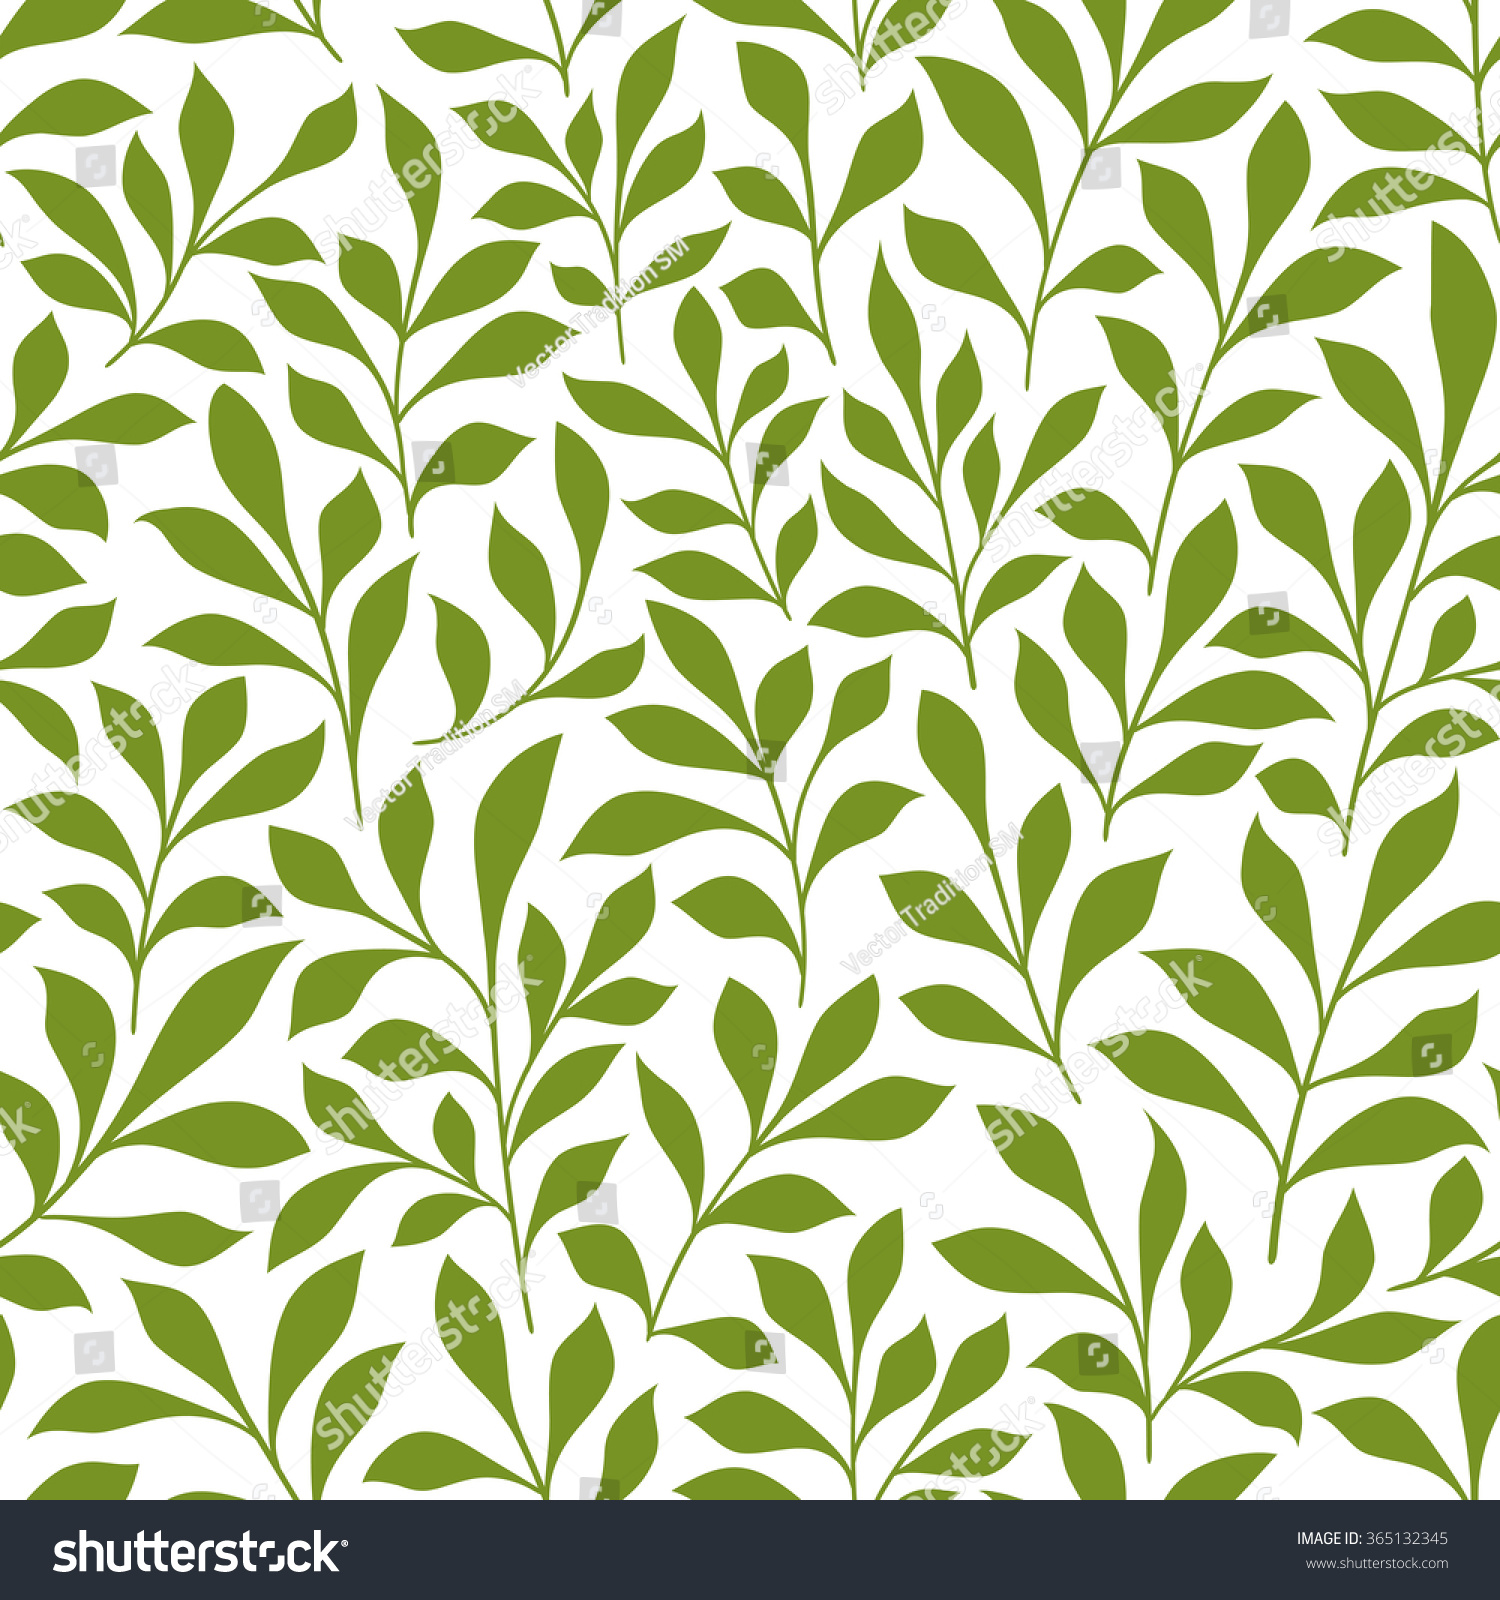 Spring Leaves Seamless Pattern Of Green Twigs With Over White Background Retro Wallpaper